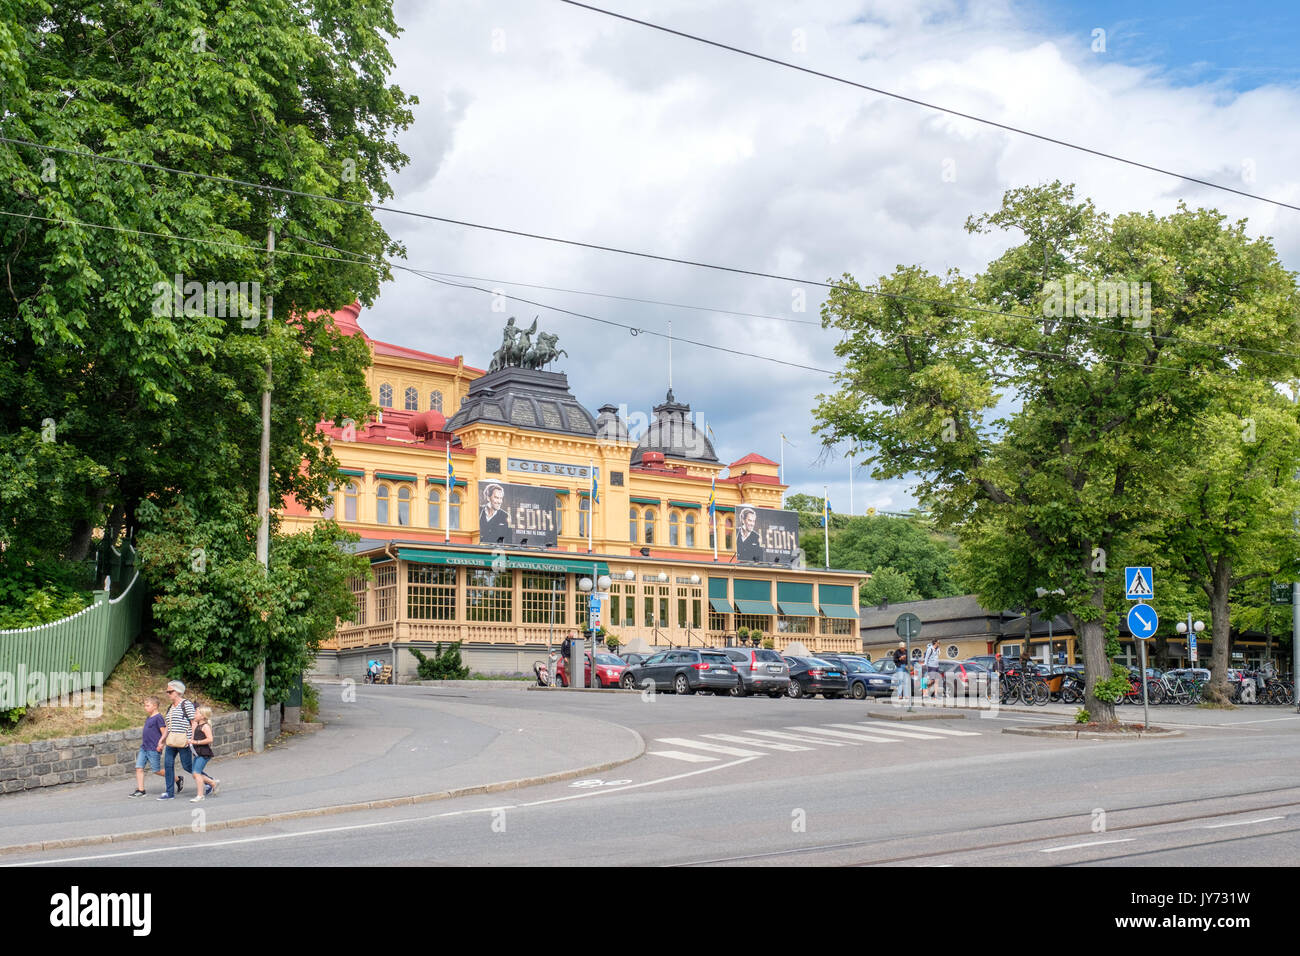 Cirkus arena at Djurgarden  in Stockholm. Djurgarden is a recreational area with historical buildings, monuments, amusement park and open-air museum. - Stock Image